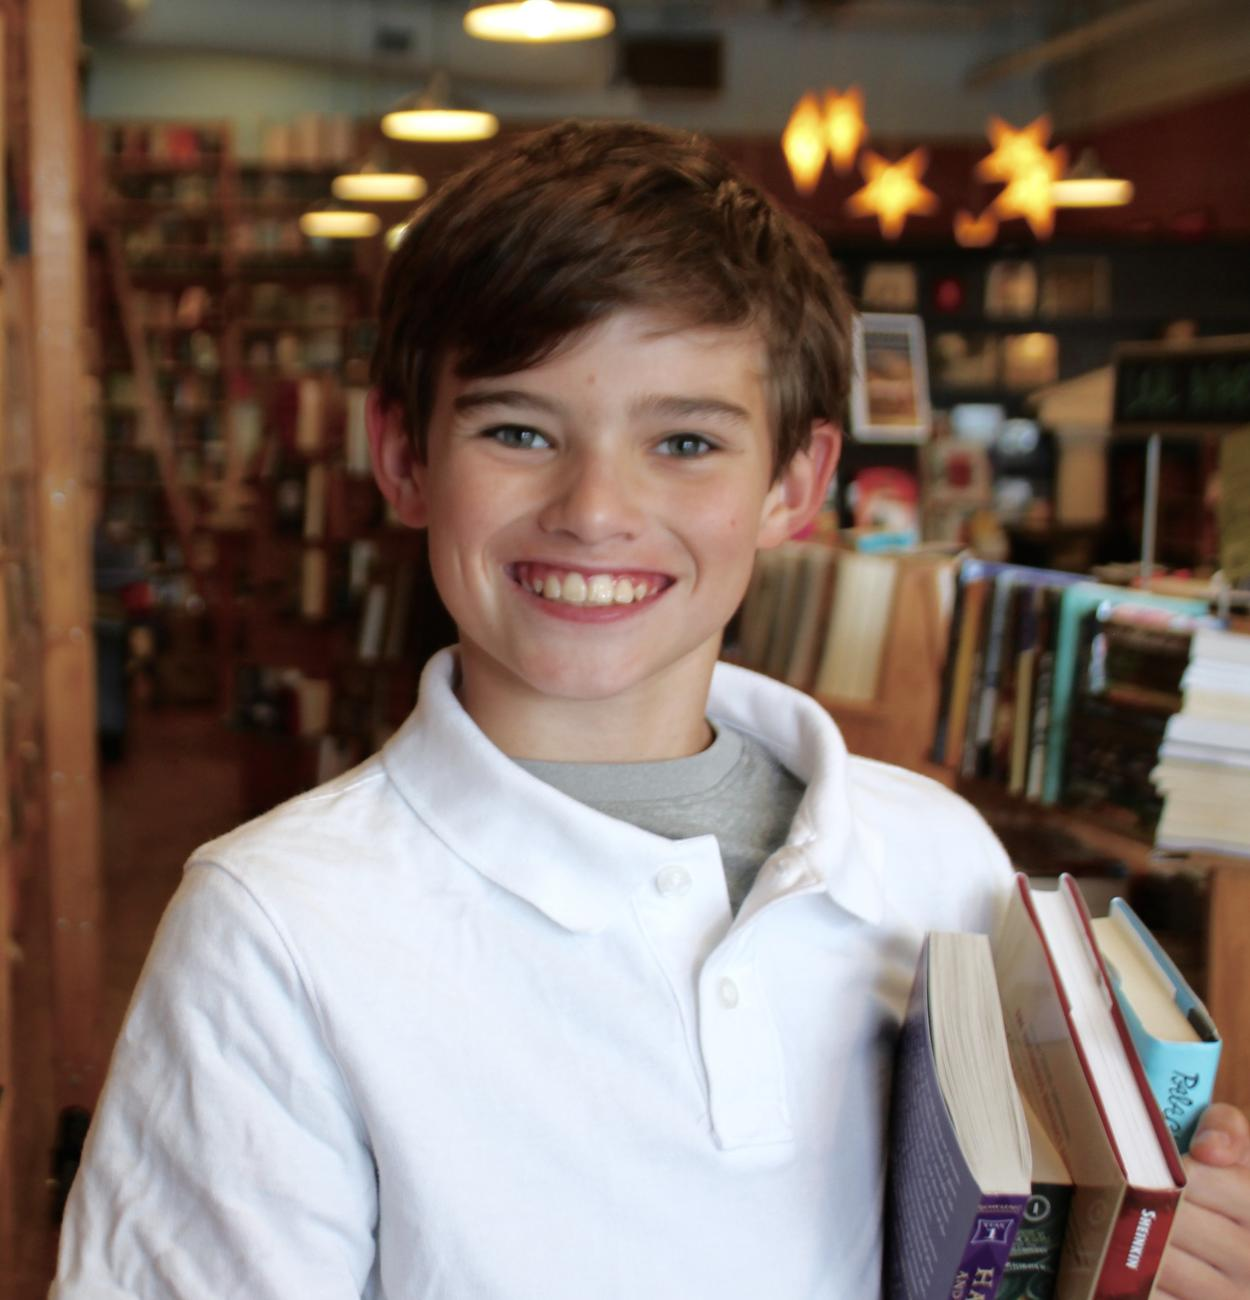 My Brother Michael By Janis Owens; Bright's Passage By Josh Ritter; A  Girl Named Zippy By Haven Kimmel; The Book Of The Dun Cow By Jr Wangerin  Walter